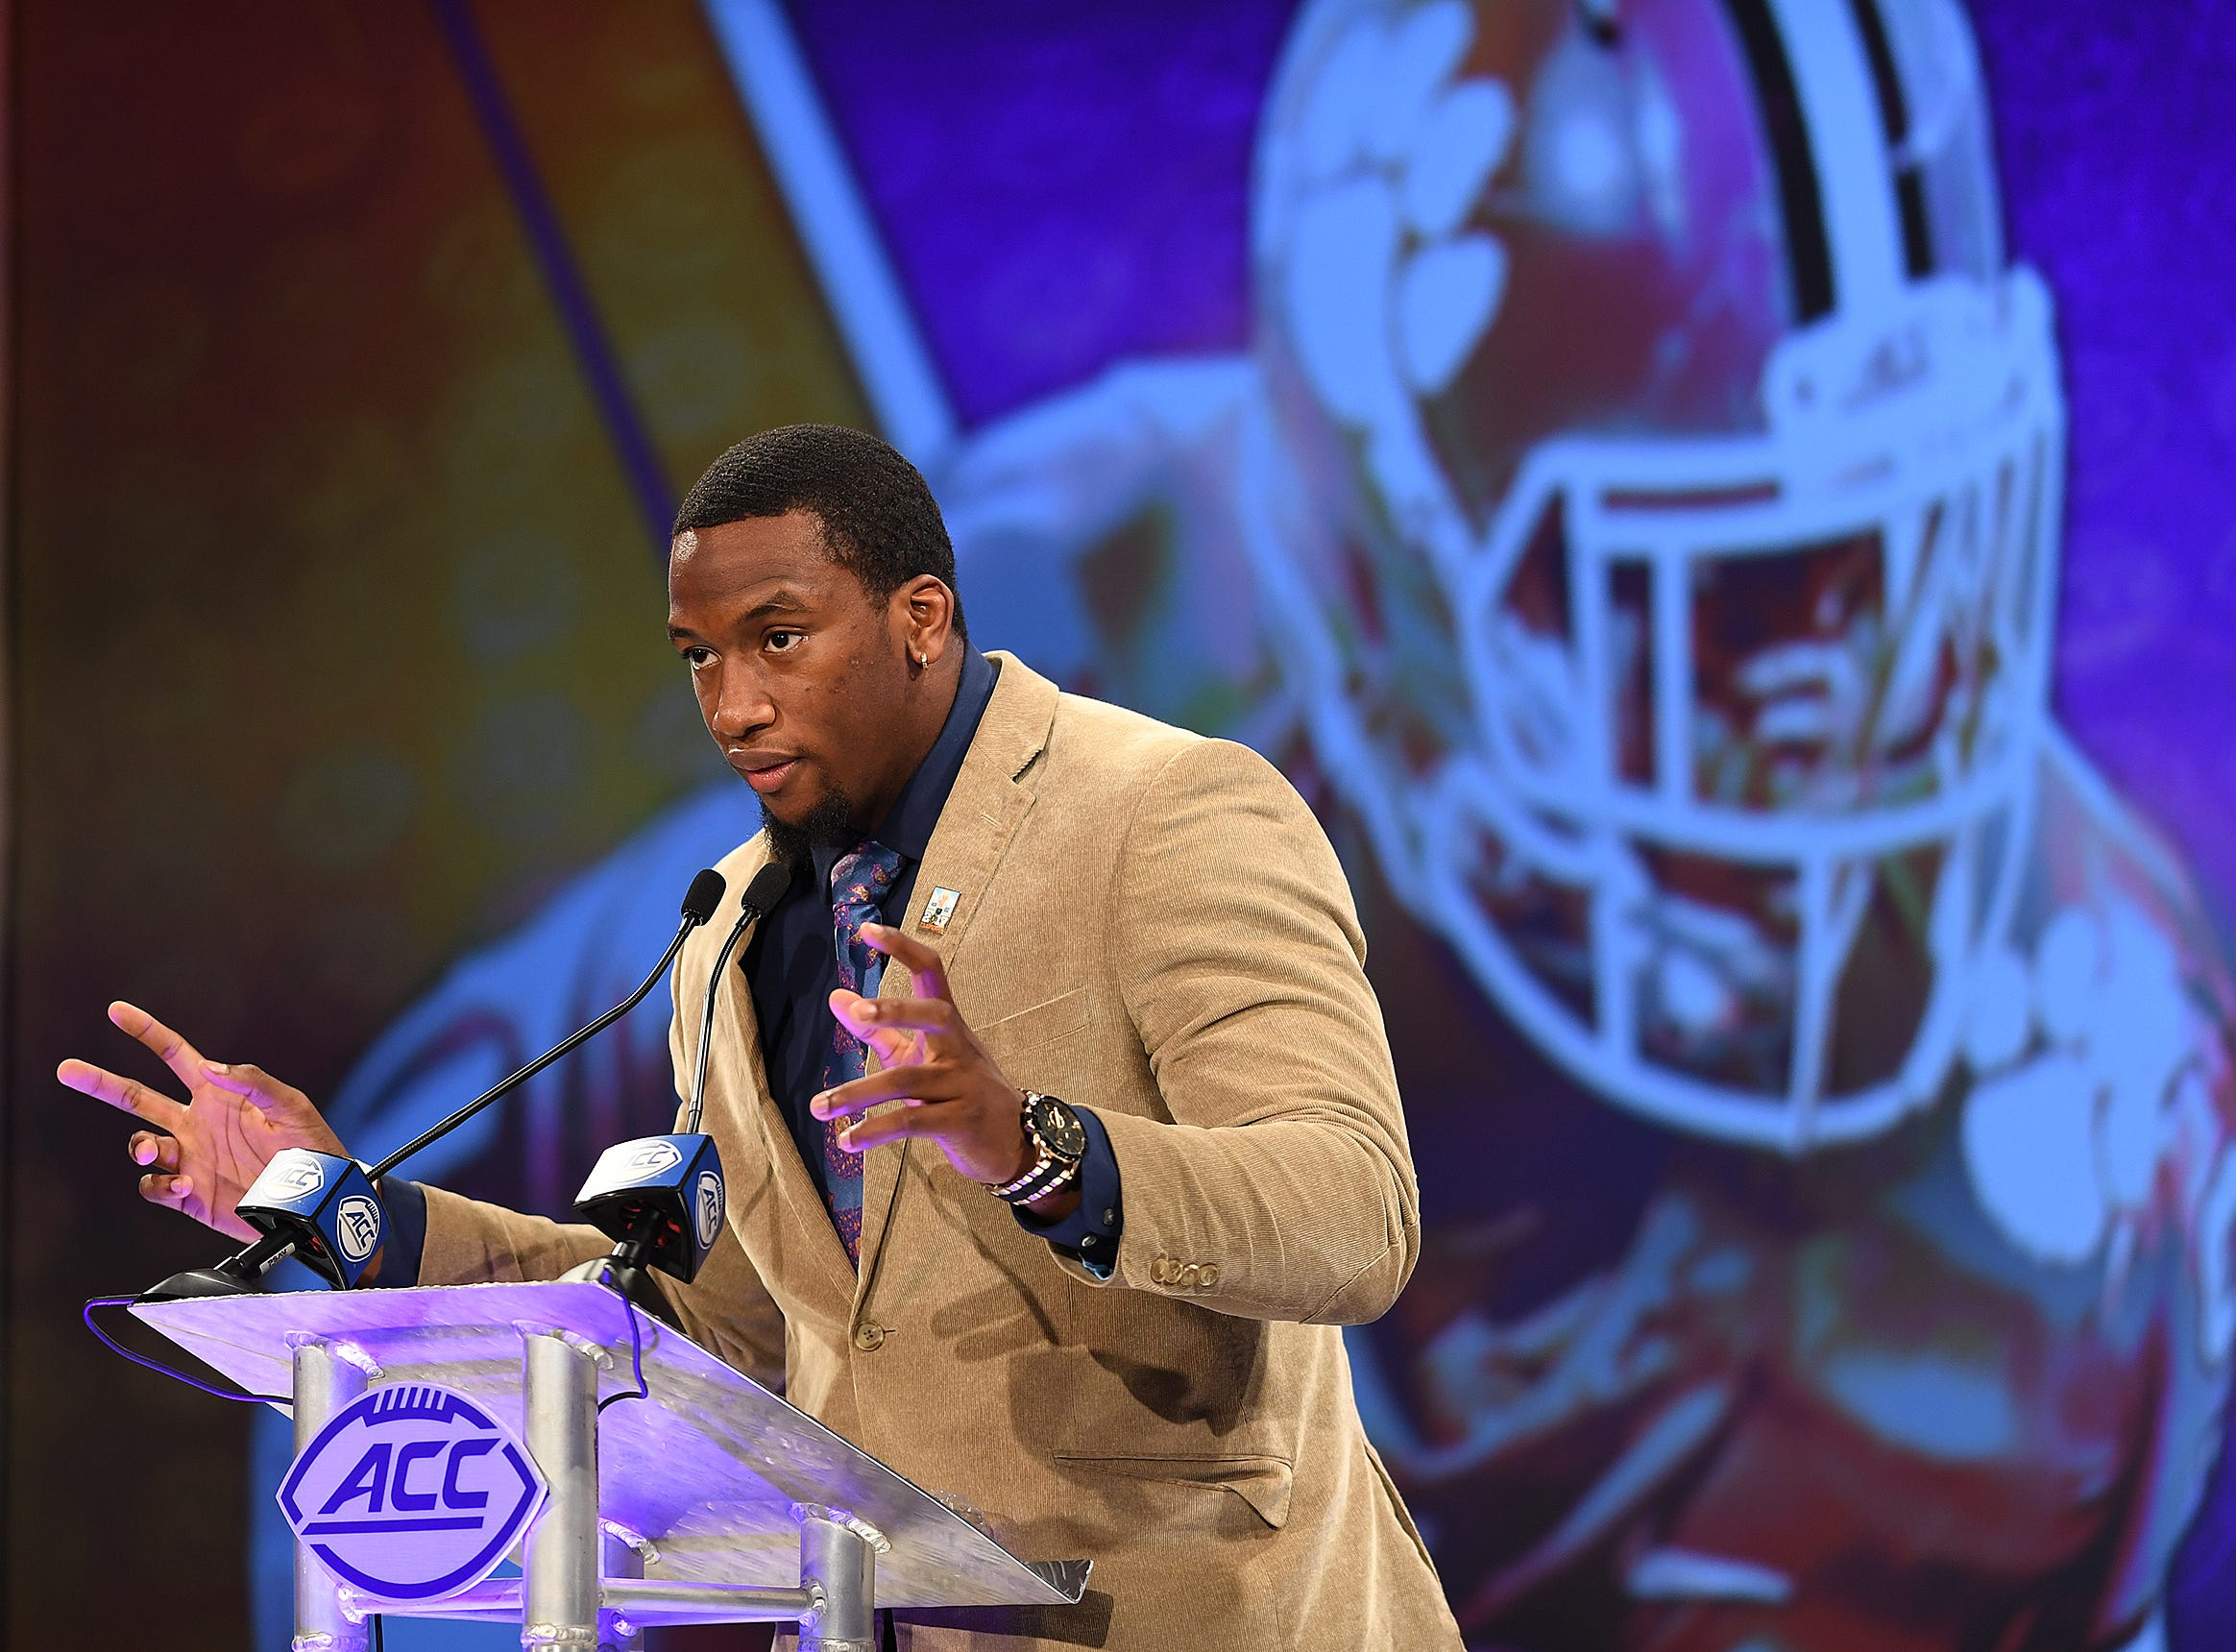 Clemson defensive lineman Clelin Ferrell answers questions at the ACC Football Kickoff in Charlotte, N.C., Thursday, July 19, 2018.